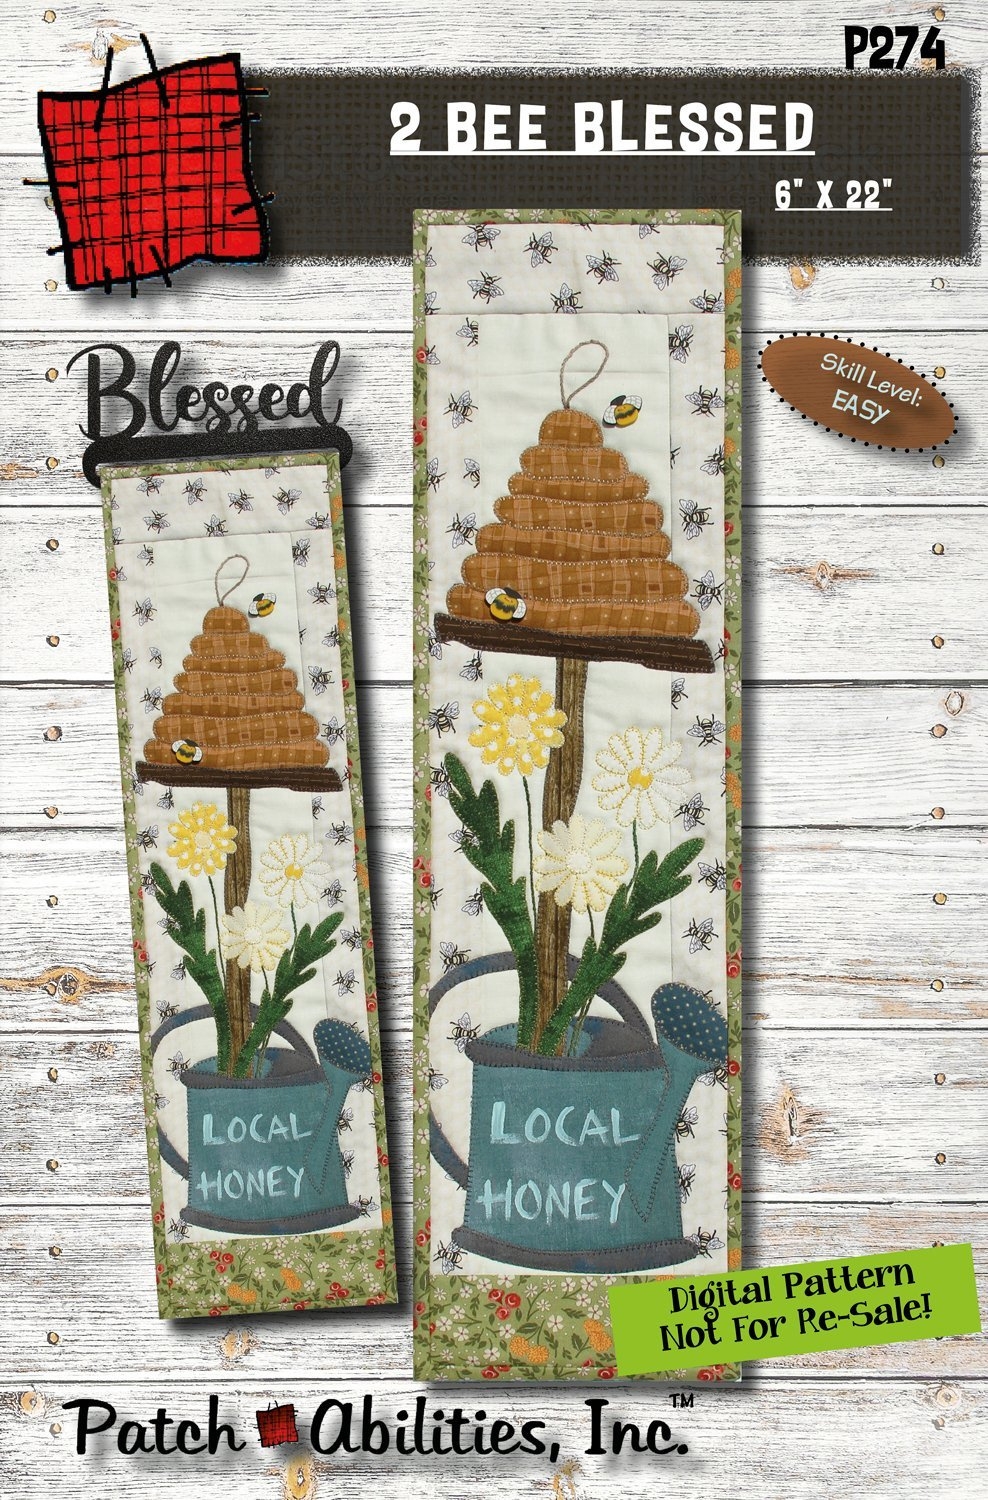 2 Bee Blessed Pattern